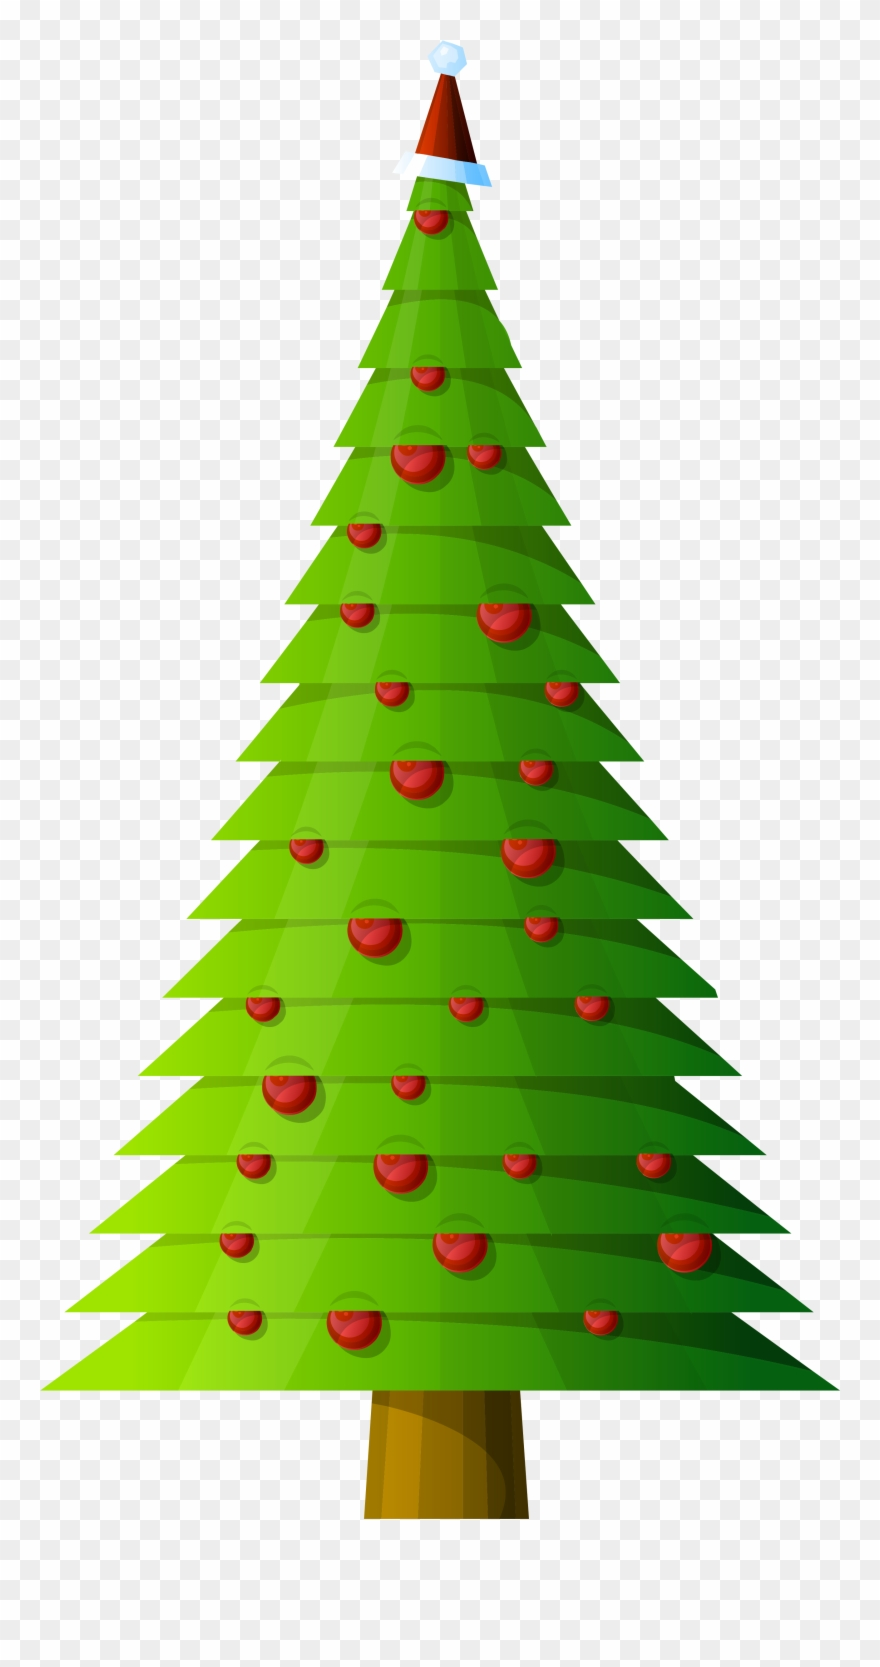 Tall Christmas Tree Clipart.Graphic Royalty Free Christmas Tree Style Transparent Tall